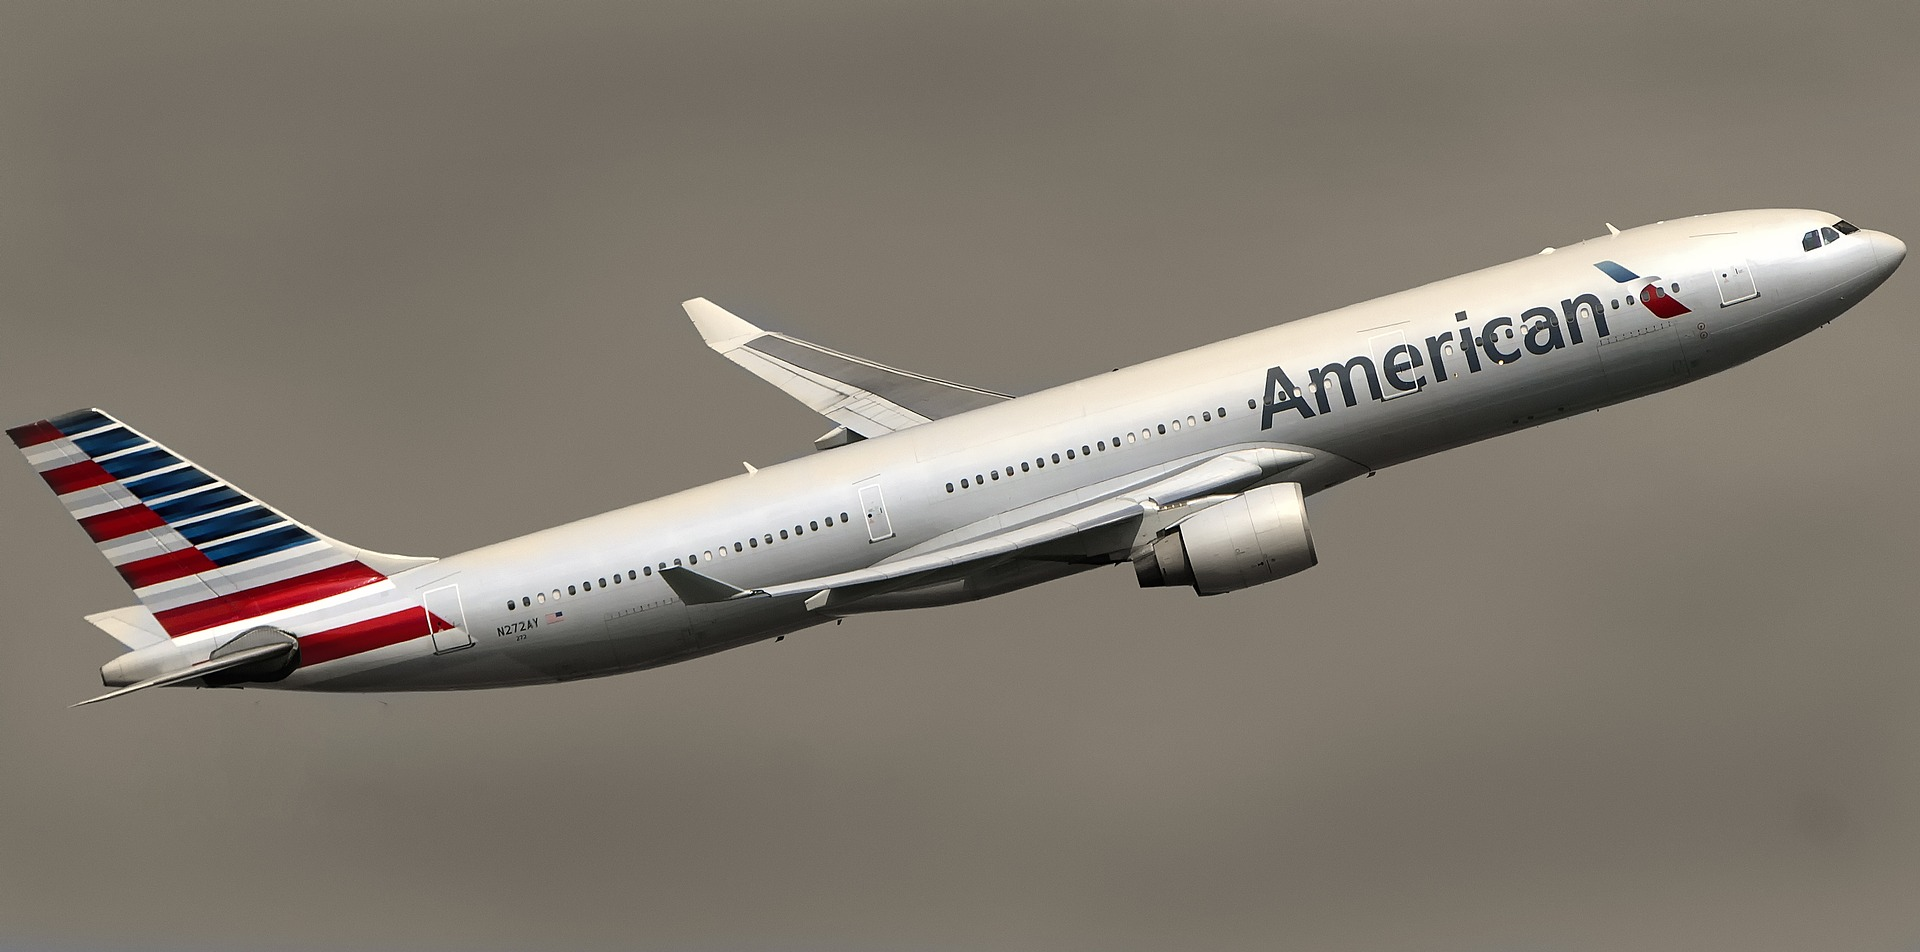 American Airlines AAL stock news and analysis